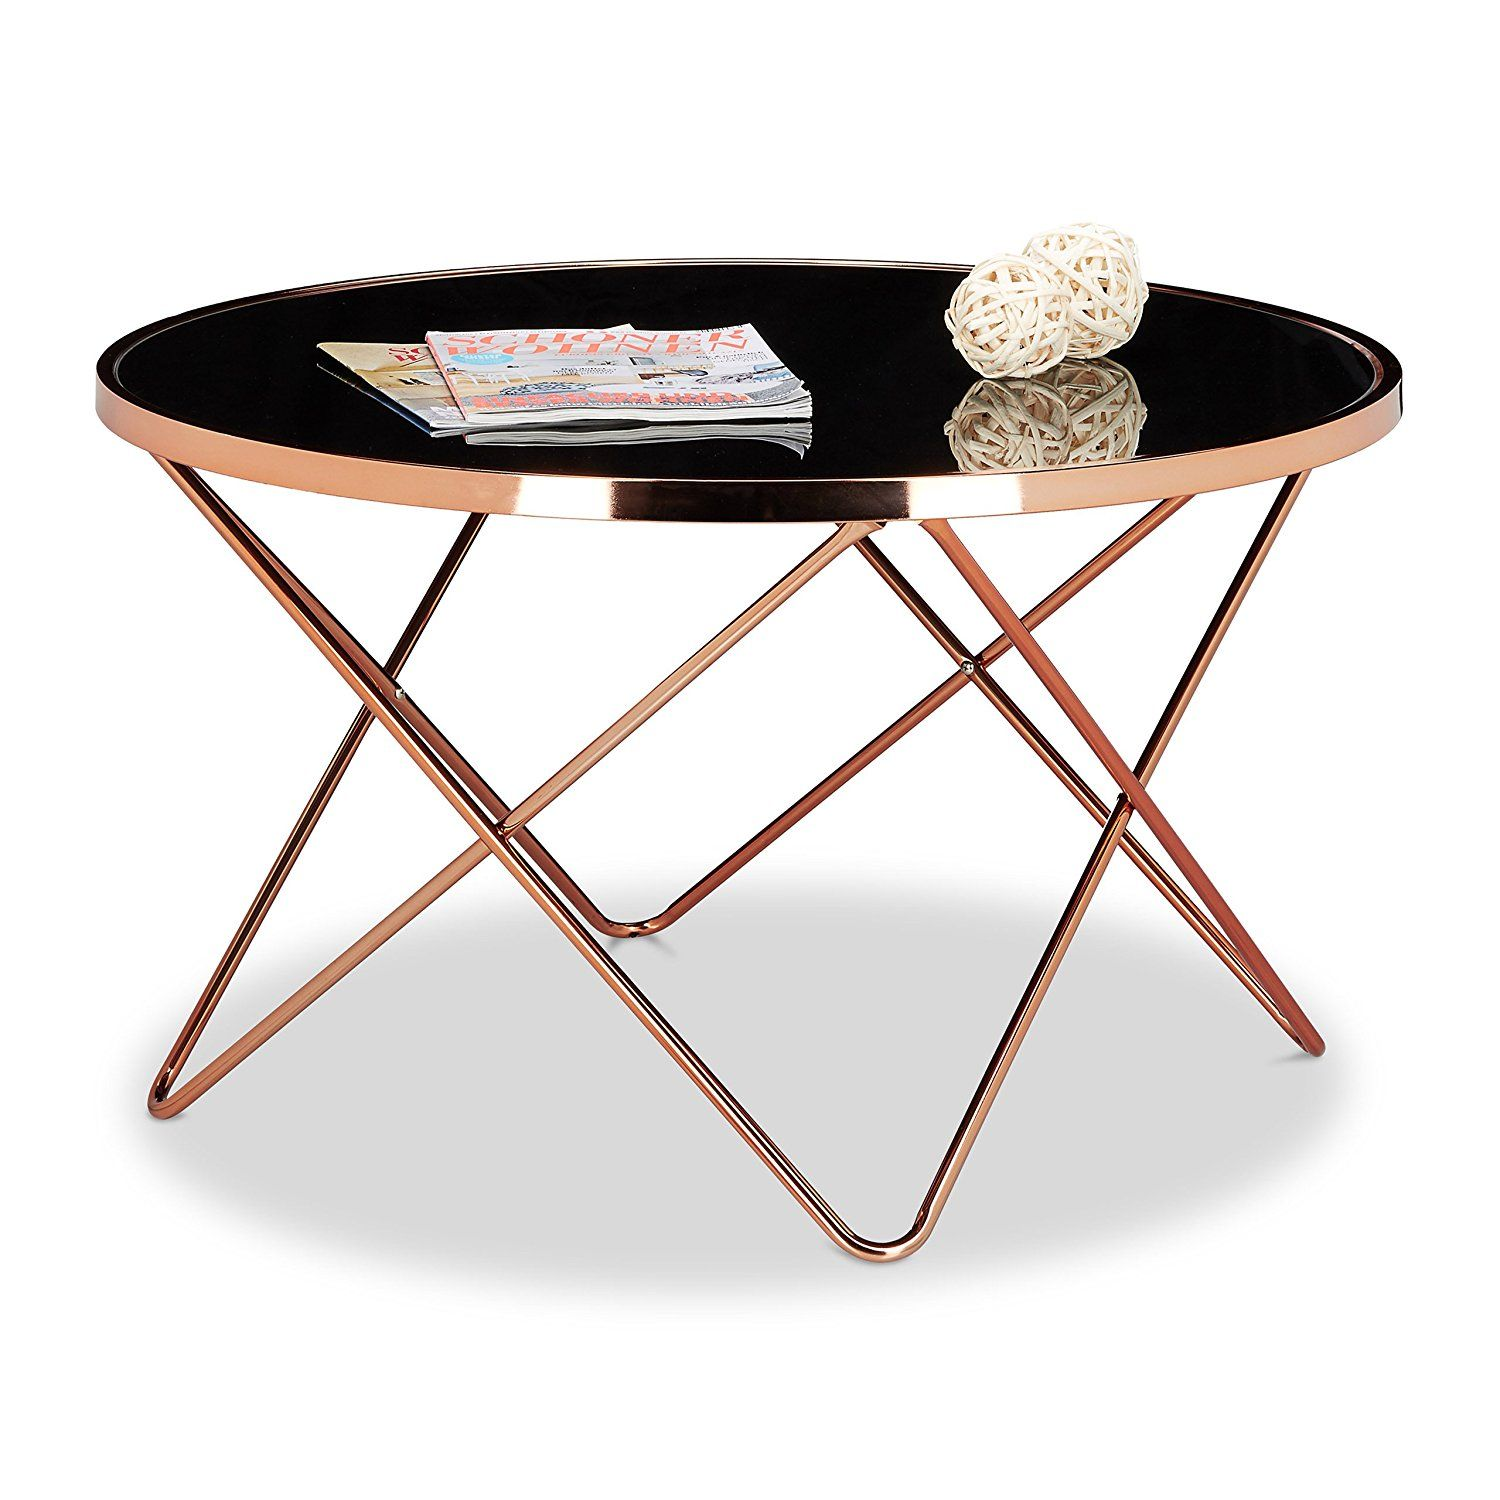 Relaxdays Beistelltisch Copper Aus Kupfer Und Schwarzglas Groß Hbt 49 X 85 X 85 Cm Glas Couchtisch In Edlem Design A Side Table Copper Side Table Curved Table